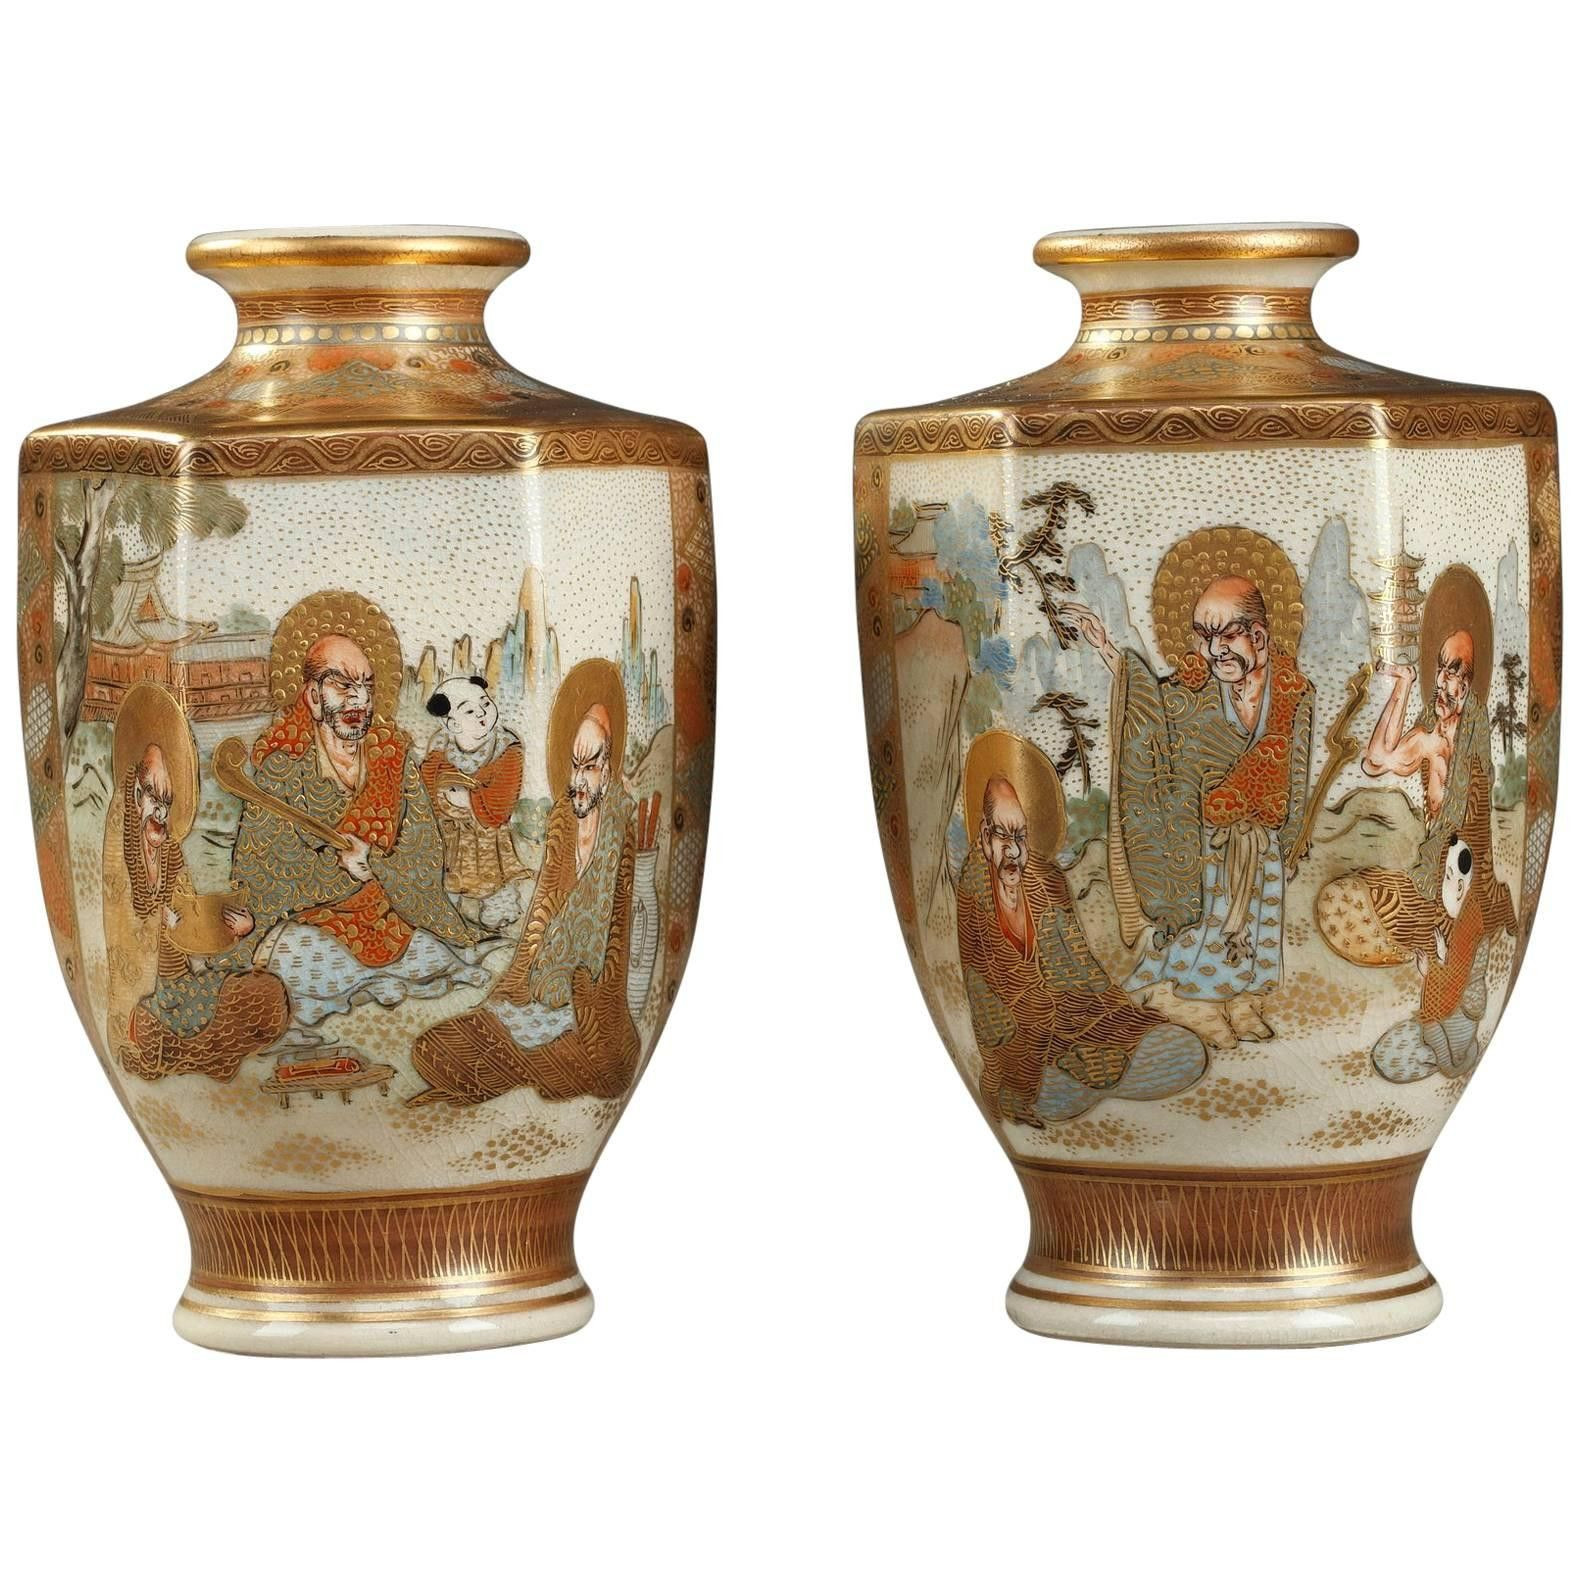 rosenthal porcelain vase of 18 mid century glass vase the weekly world with chinese ginger jar table lamps new vases chinese vase with lid